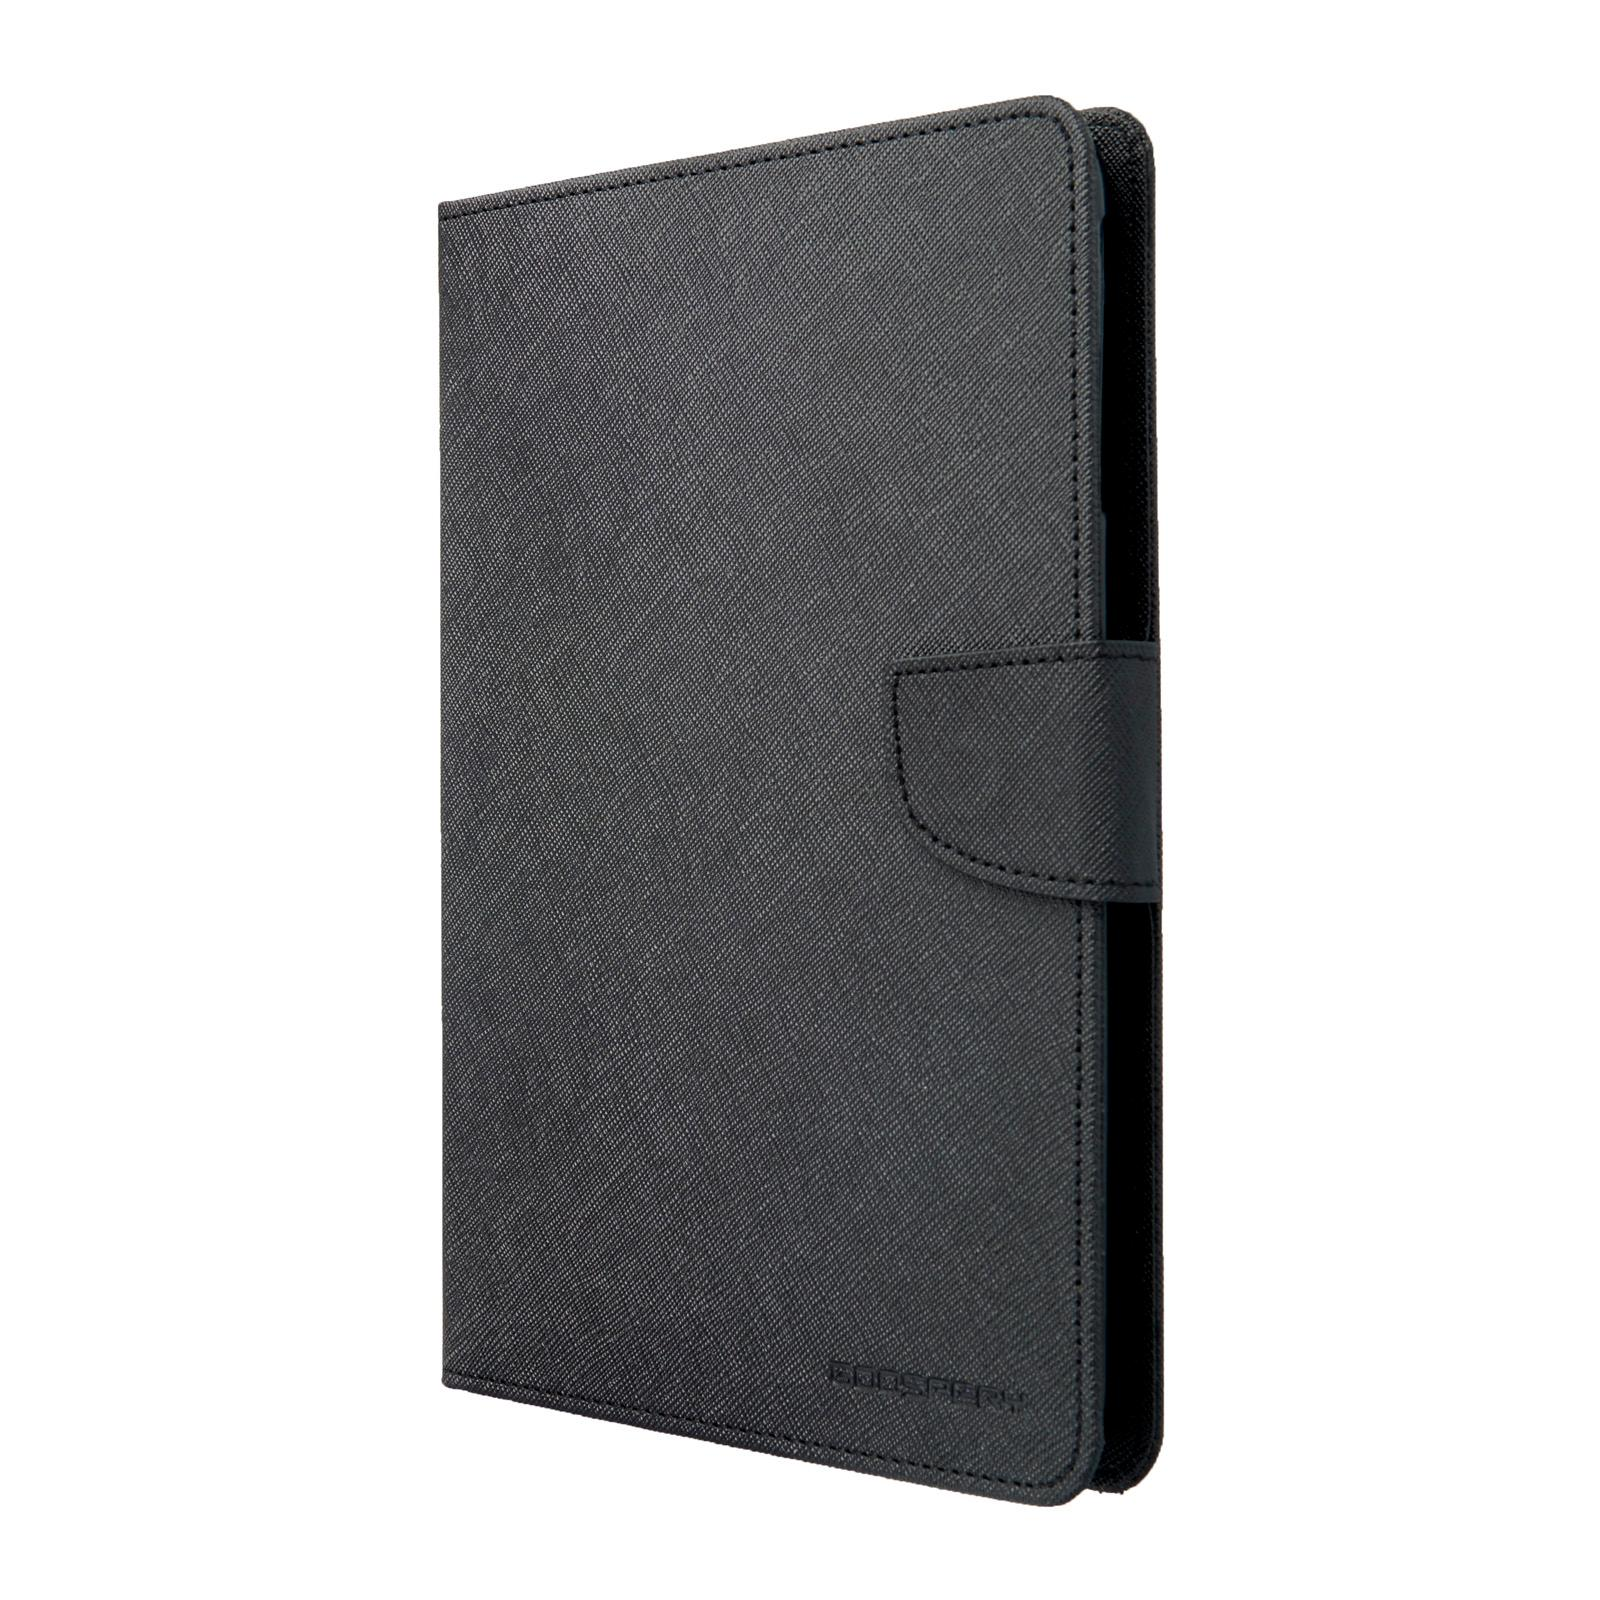 Pouzdro / kryt pro Apple iPad mini 1 / 2 / 3 - Mercury, Fancy Diary Black/Black